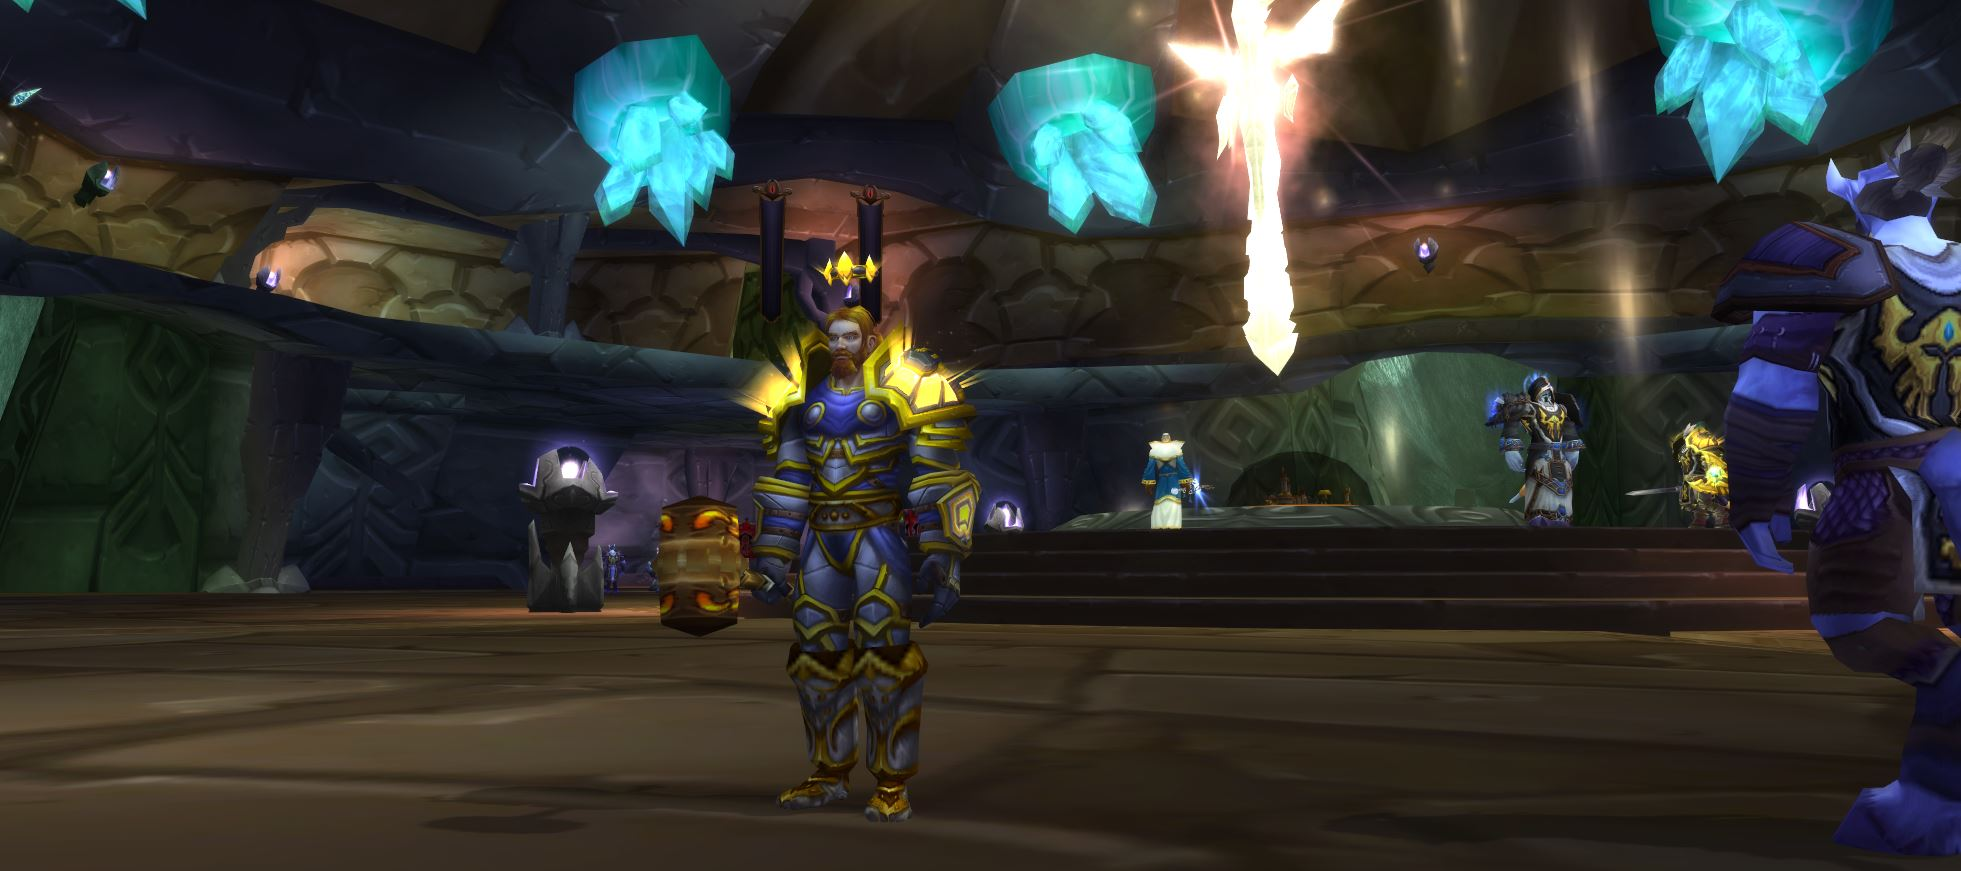 tbc classic pve retribution paladin gear & best in slot (bis) burning crusade classic